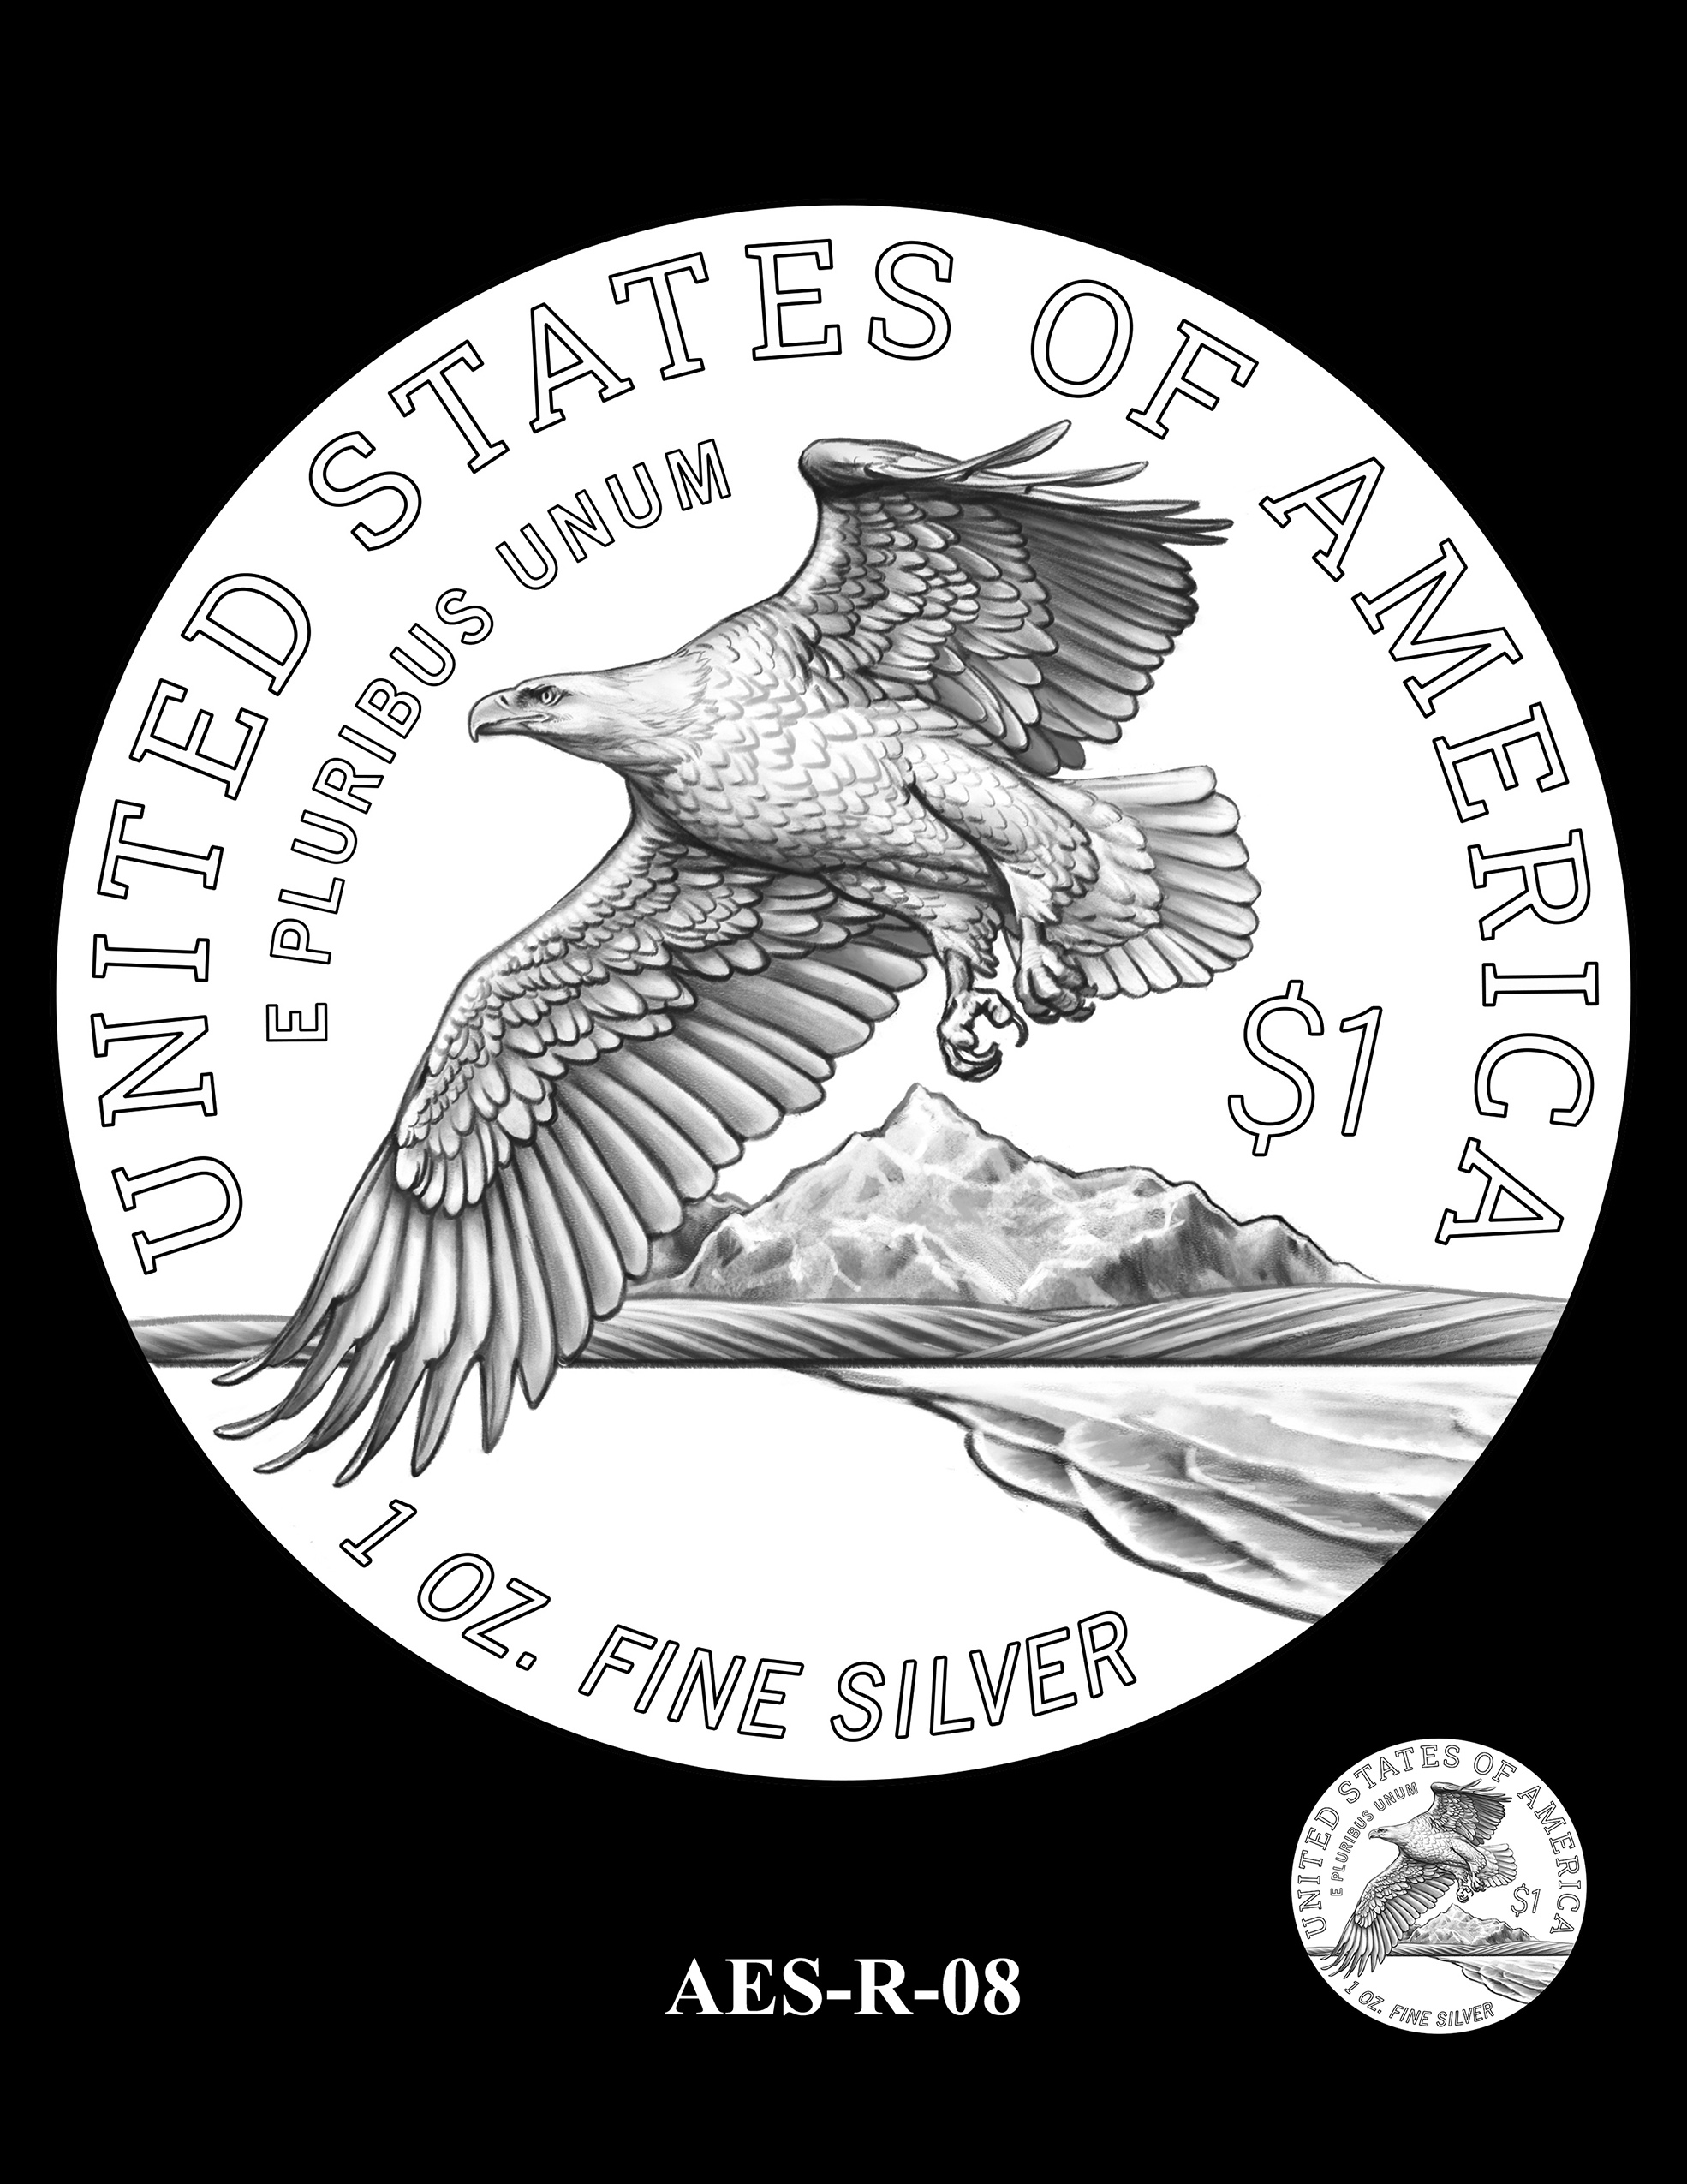 AES-R-08 -- American Eagle Proof and Bullion Silver Coin - Reverse